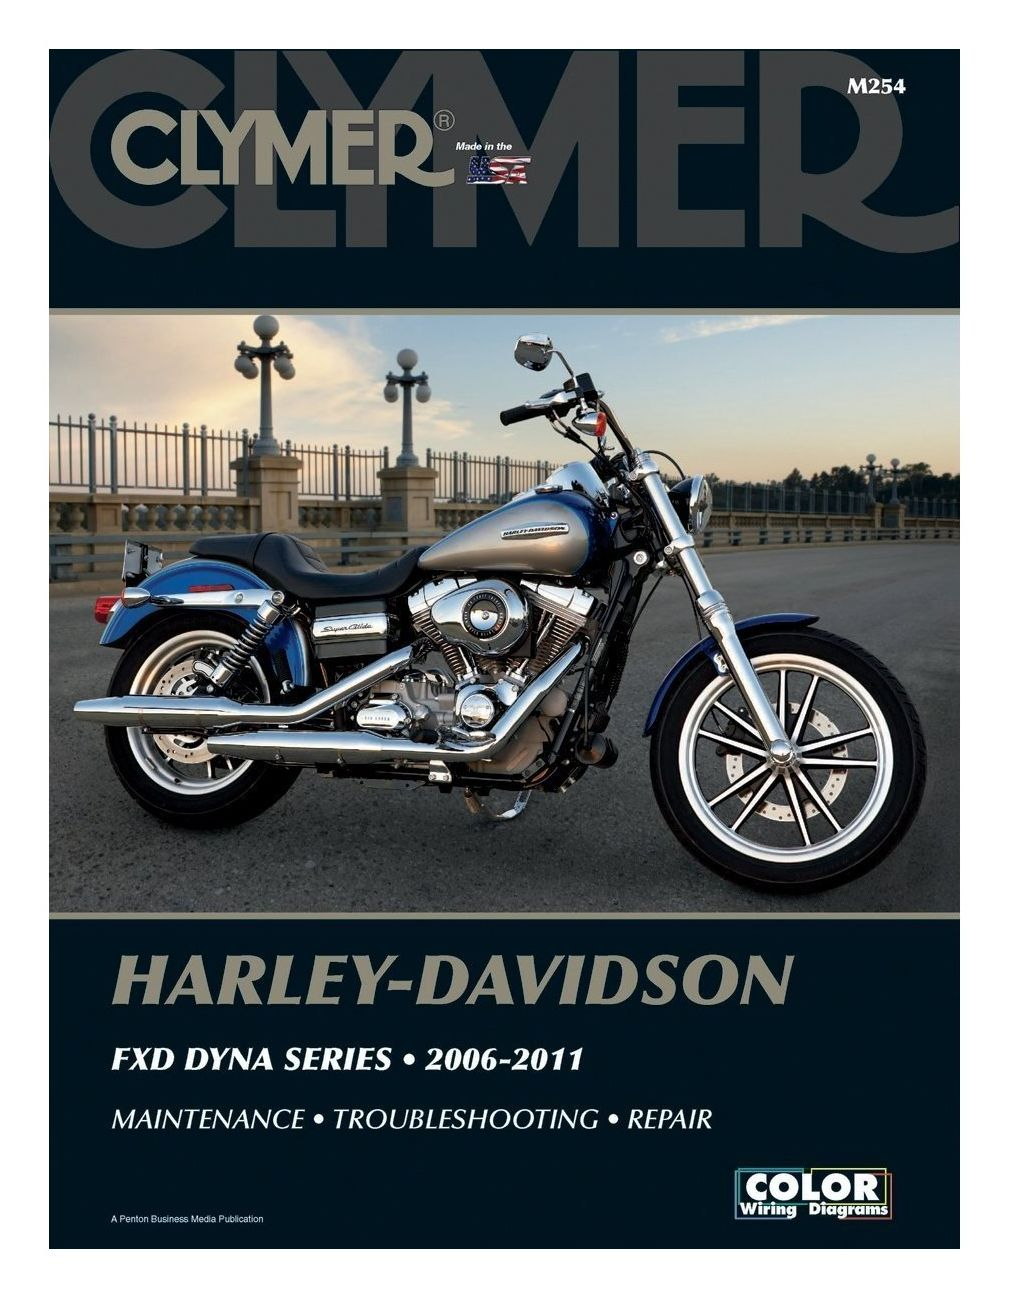 hight resolution of clymer manual harley davidson fxd dyna series 2006 2011 10 5 20